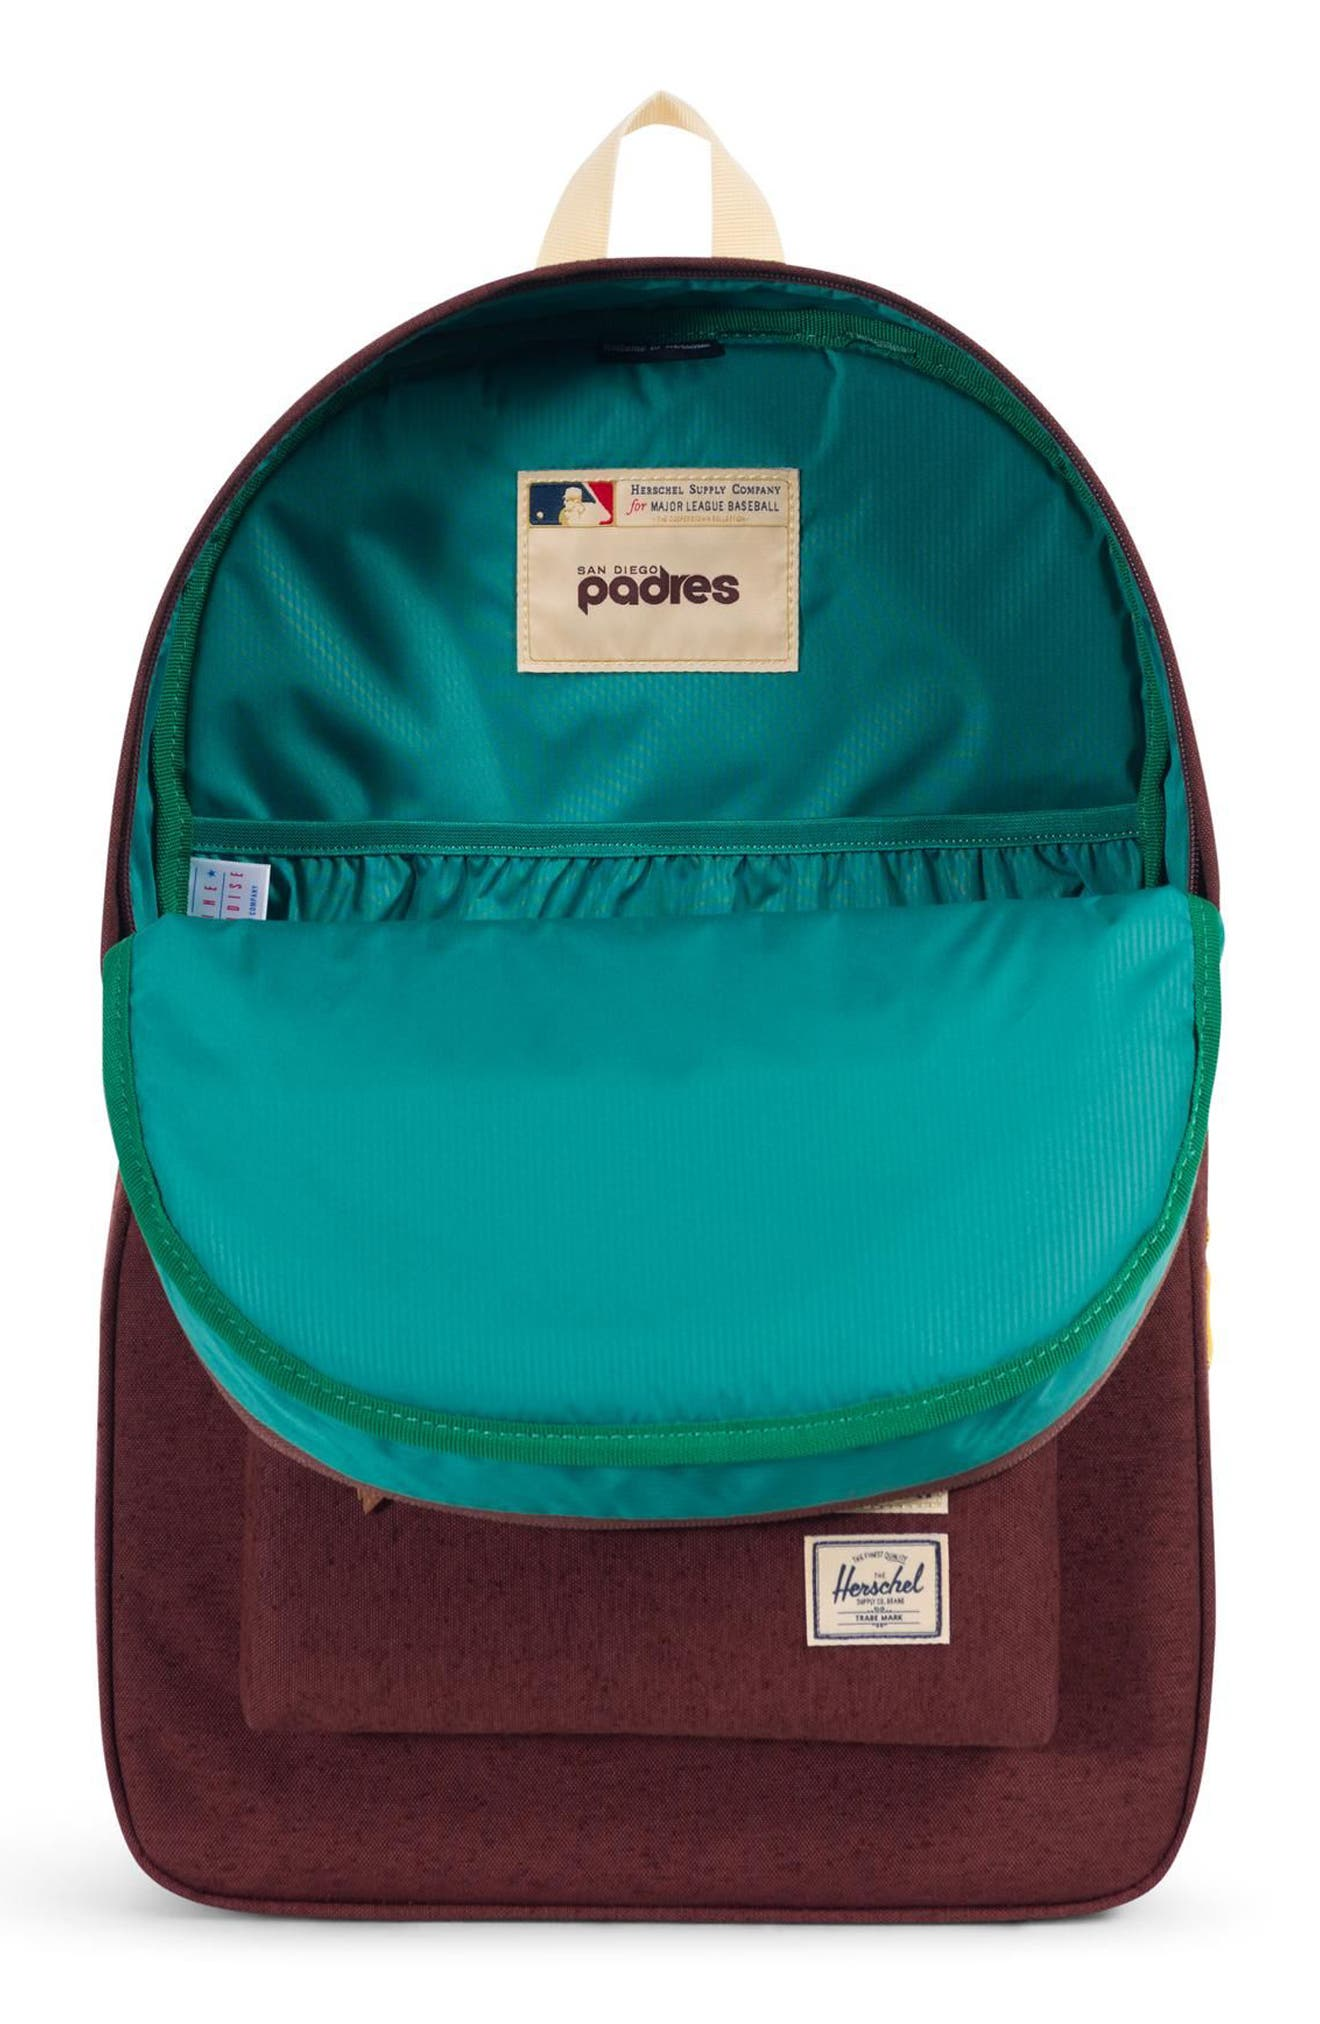 HERSCHEL SUPPLY CO.,                             Heritage - MLB Cooperstown Collection Backpack,                             Alternate thumbnail 3, color,                             SAN DIEGO PADRES